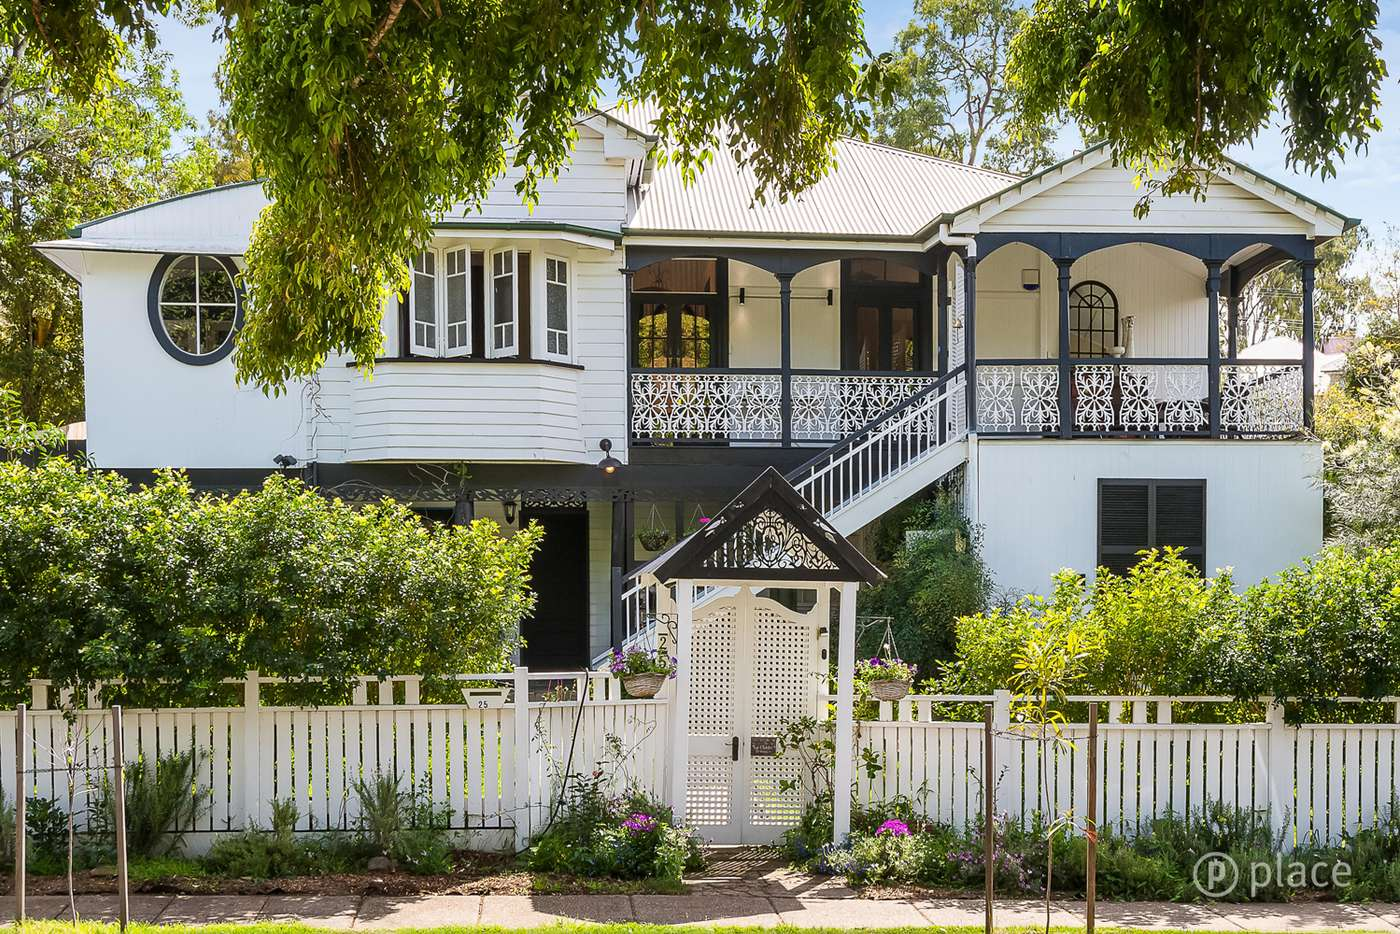 Main view of Homely house listing, 25 Munro Street, Auchenflower QLD 4066